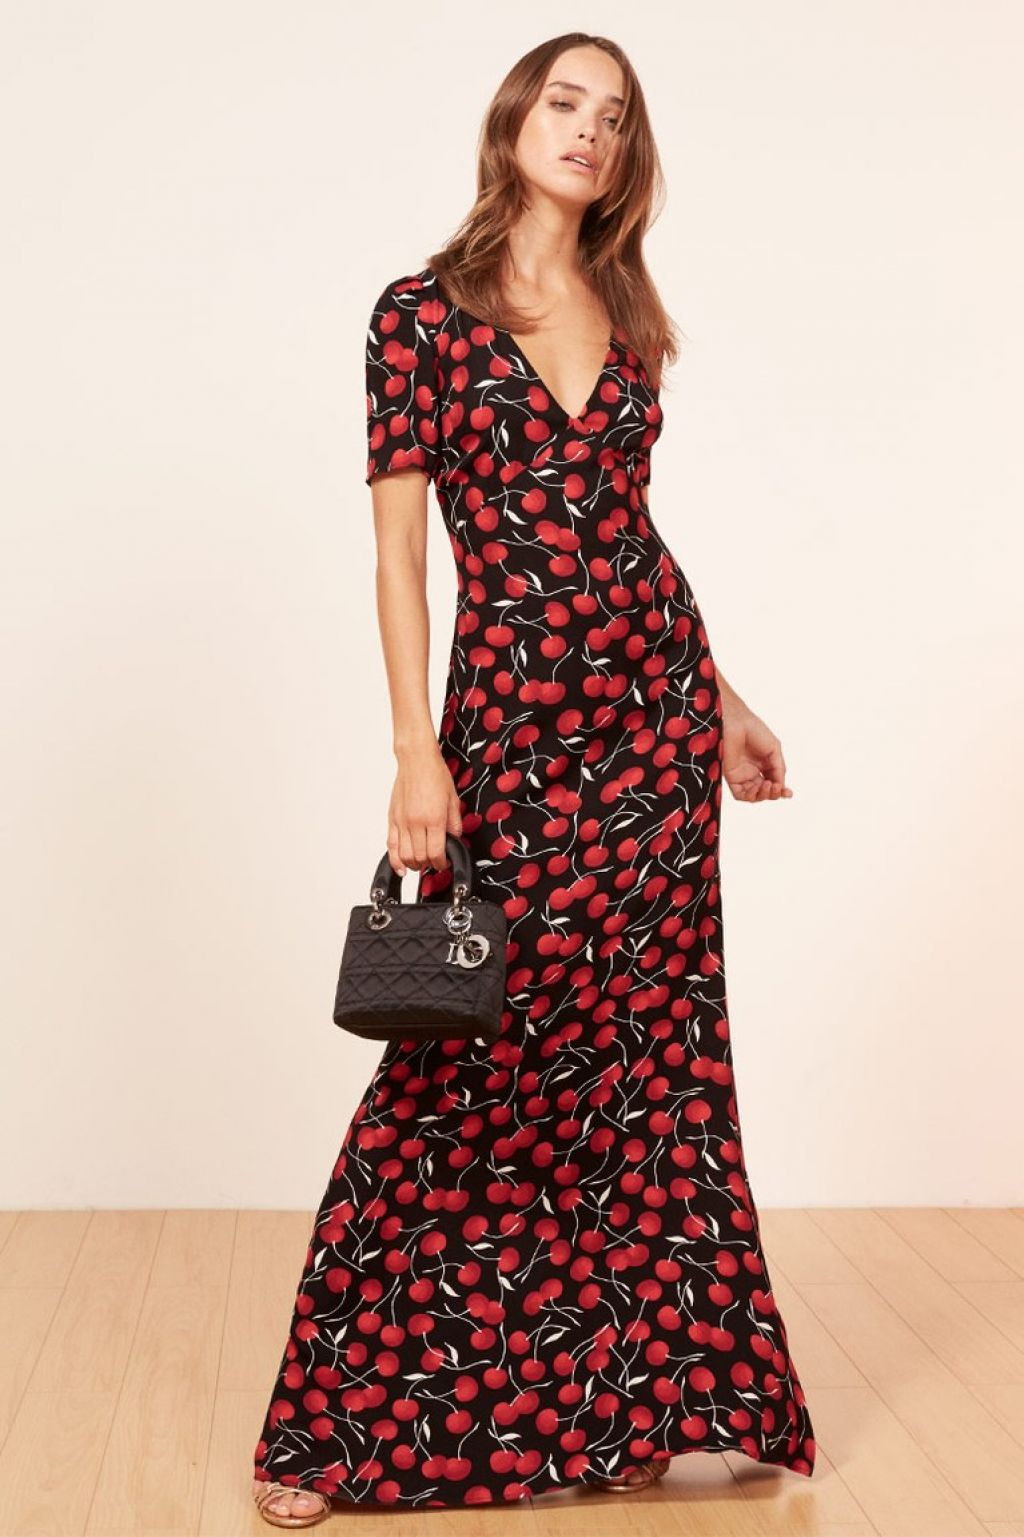 what-to-wear-for-a-spring-wedding-guest-outfit-red-dress-maxi-cherry-print-black-bag-dinner.jpeg